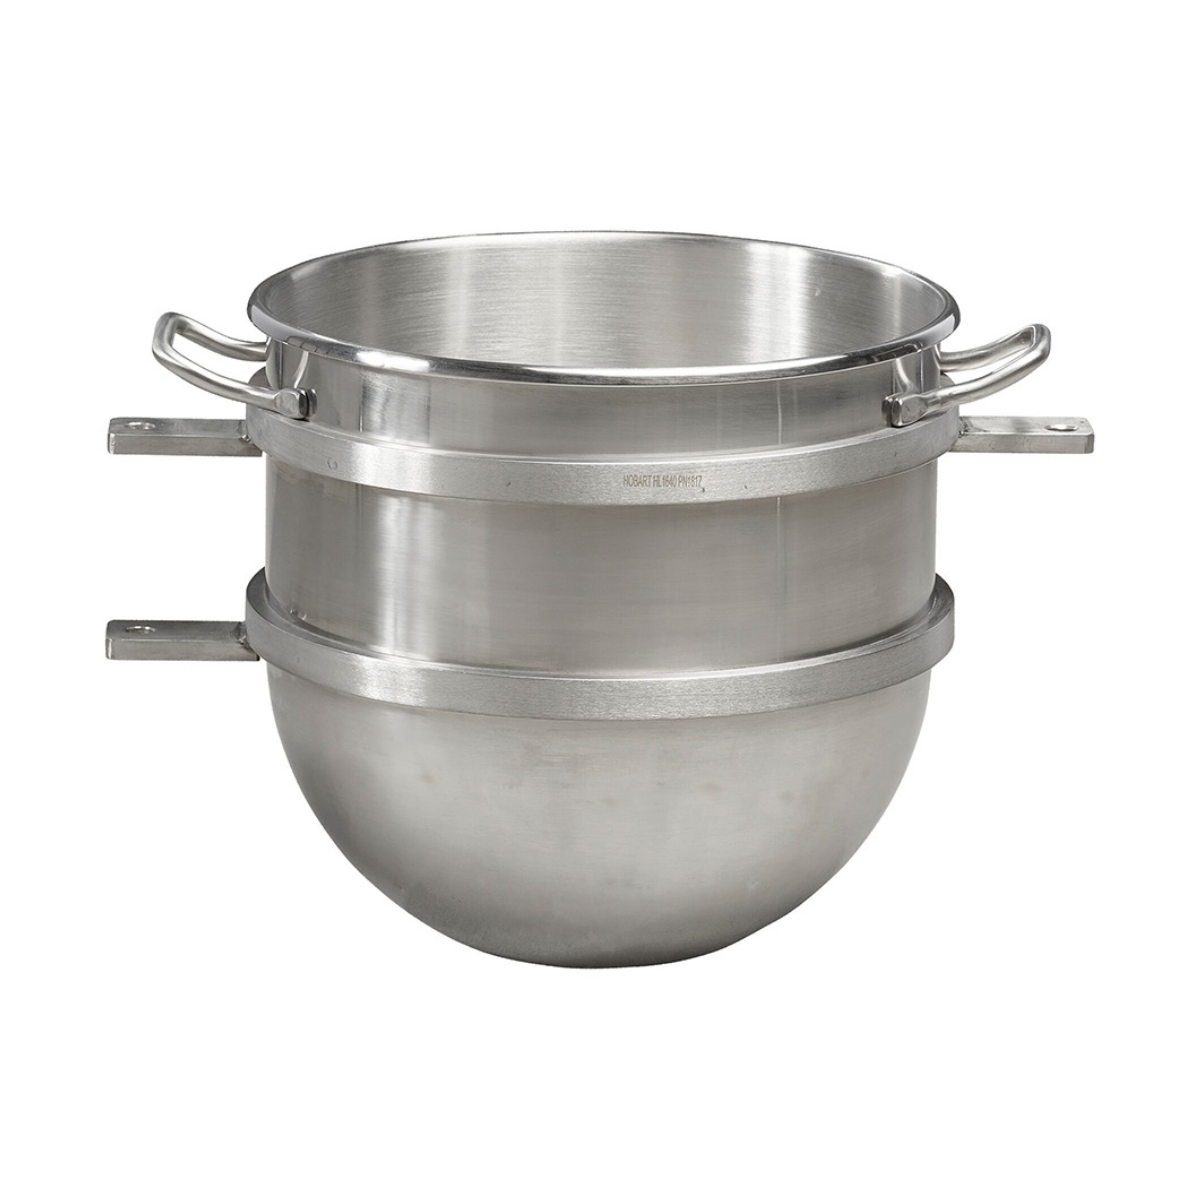 Hobart BOWL-HL80 Mixer Bowl